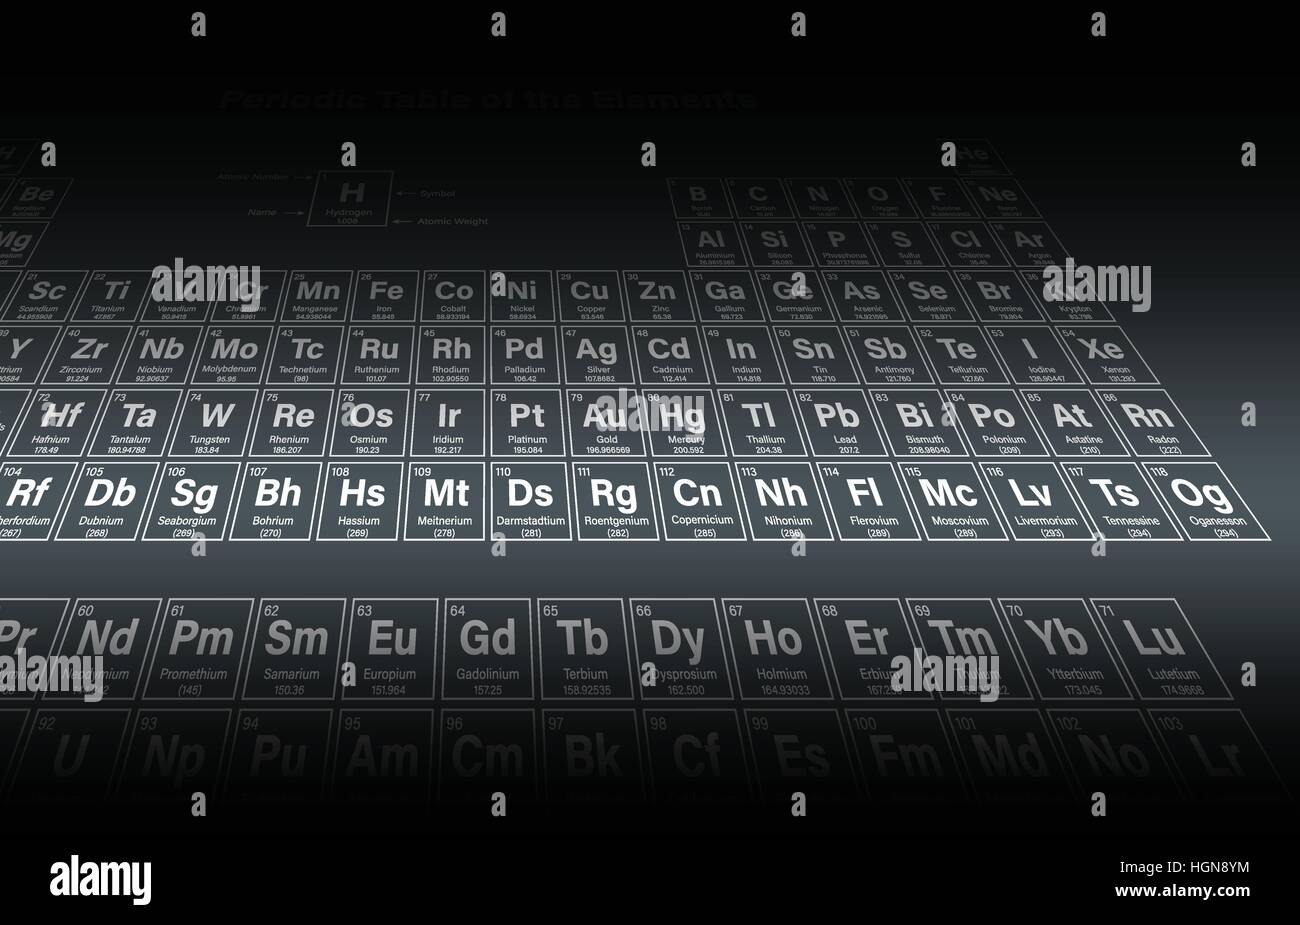 Periodic table of the elements including nihonium moscovium stock periodic table of the elements including nihonium moscovium tennessine and oganesson in perspective view vector illustration urtaz Choice Image